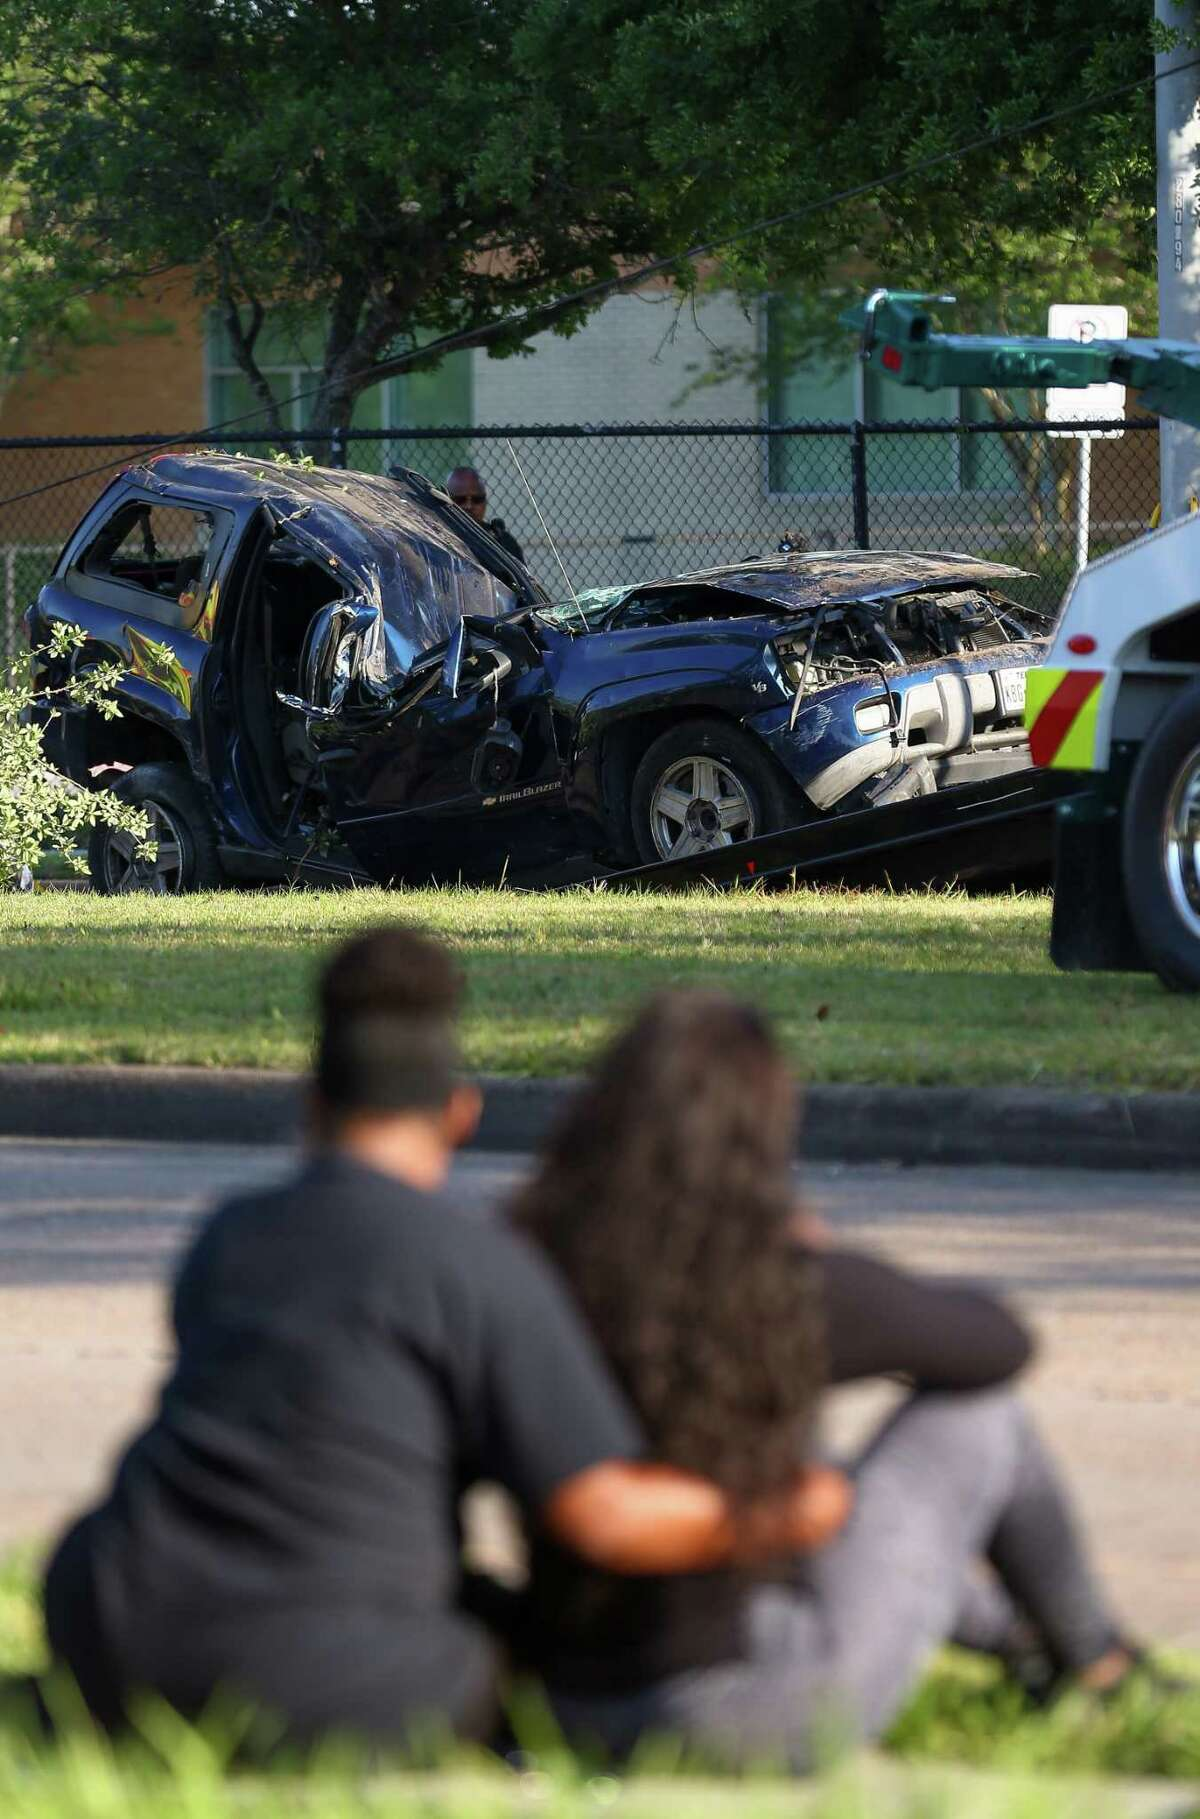 Shawna Jackson, foreground right, watches as a tow truck removes the vehicle her 15-year-old son Seviyon Farley died in during a two-vehicle crash on West Fuqua Street, near Bathurst Drive Wednesday, April 25, 2018, in Houston. Two teenage boys were killed in the wreck. ( Godofredo A. Vasquez / Houston Chronicle )